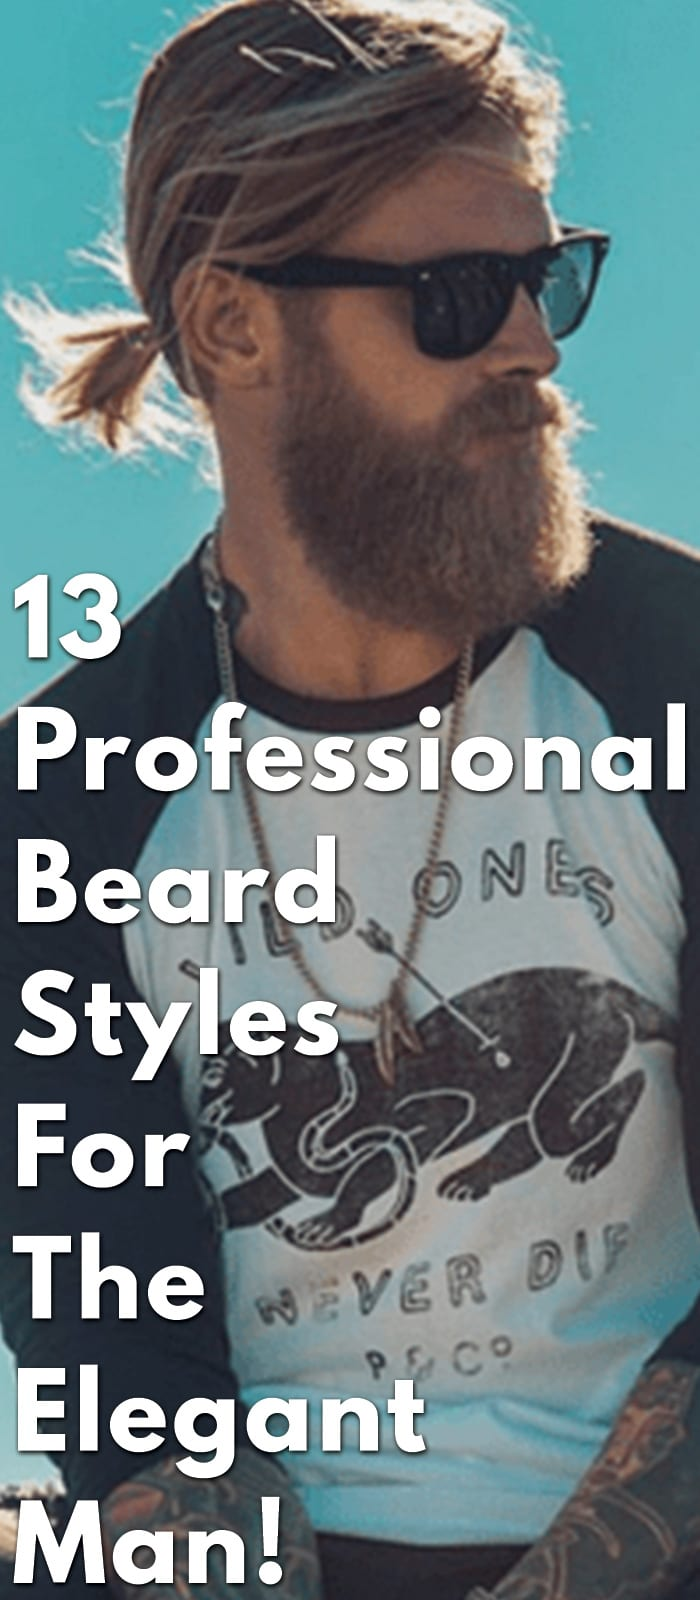 13-Professional-Beard-Styles-For-The-Elegant-Man!